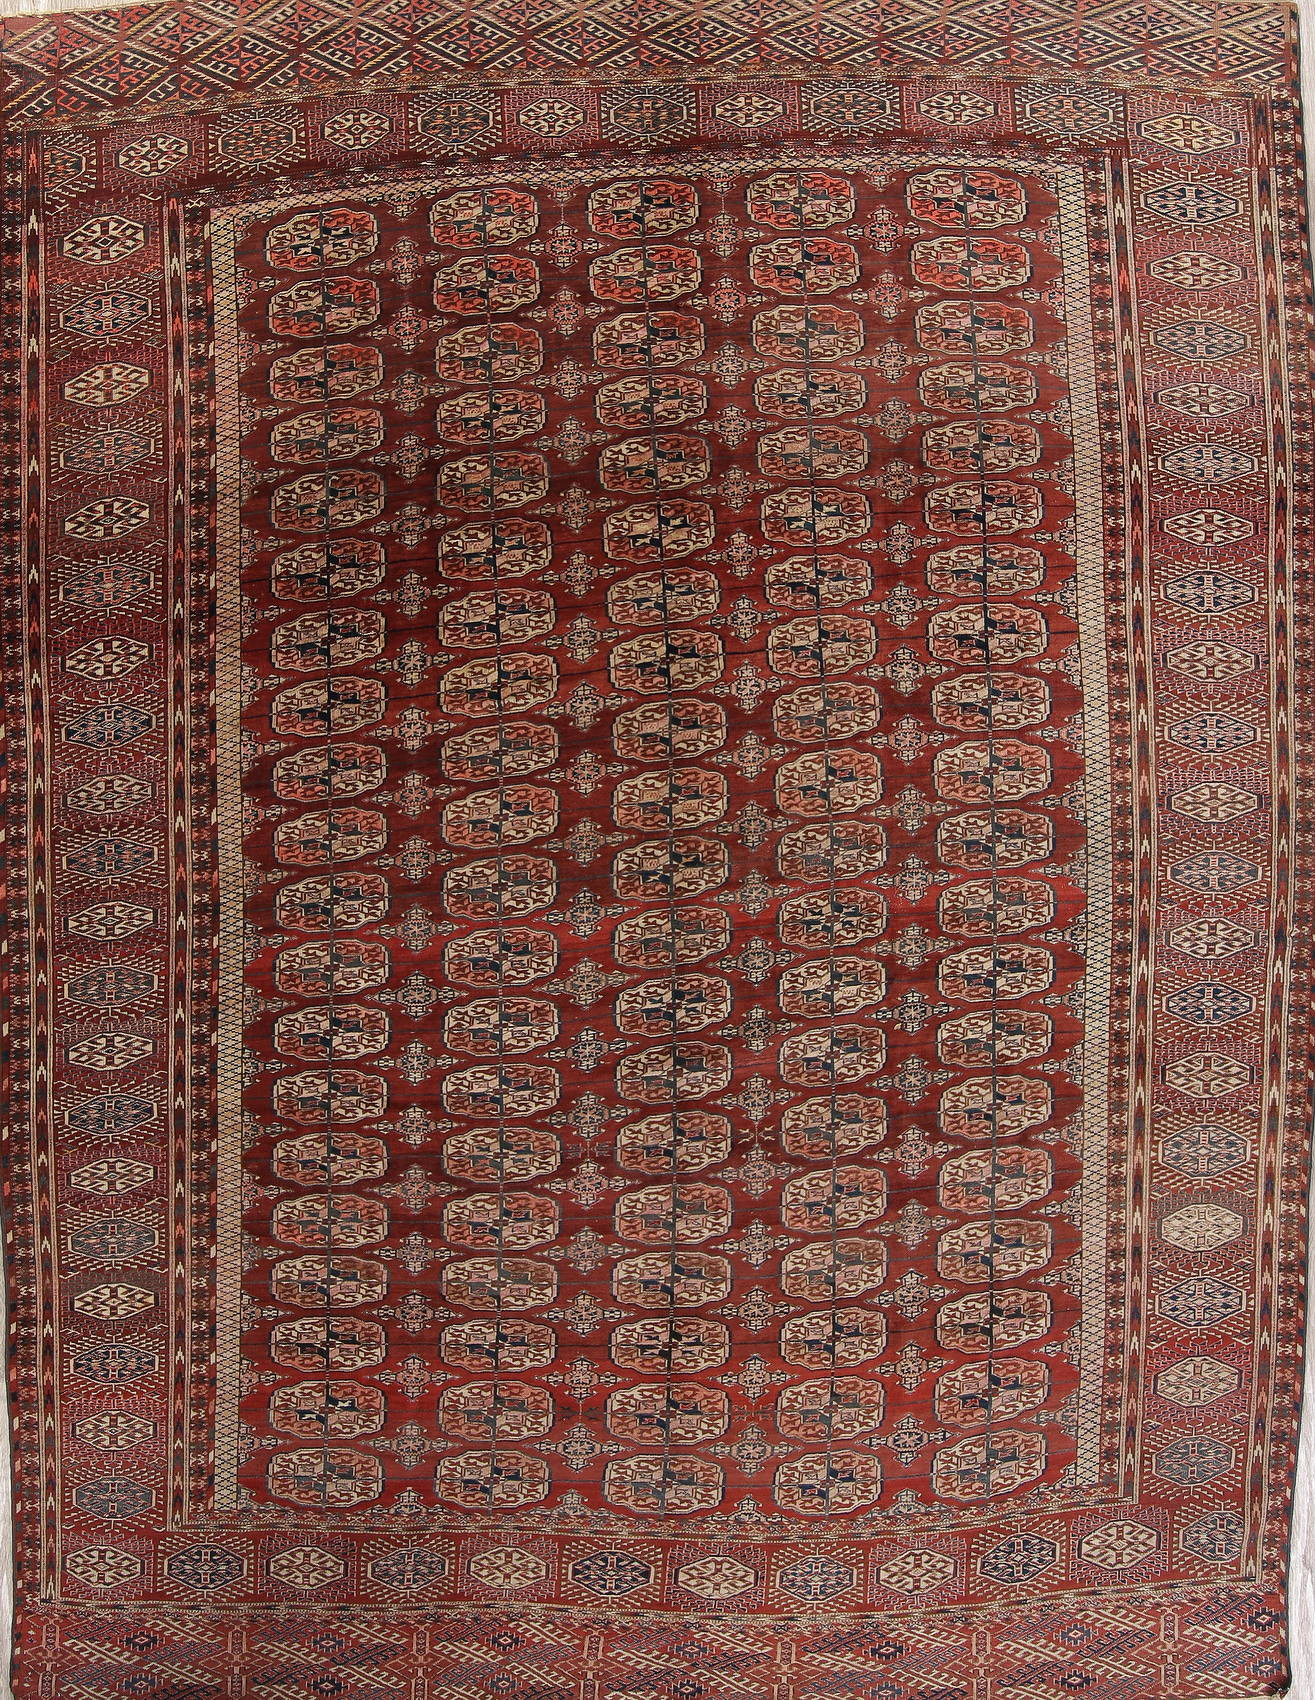 Antique Geometric Red Balouch Oriental Hand-Knotted Area Rug Wool 9x12